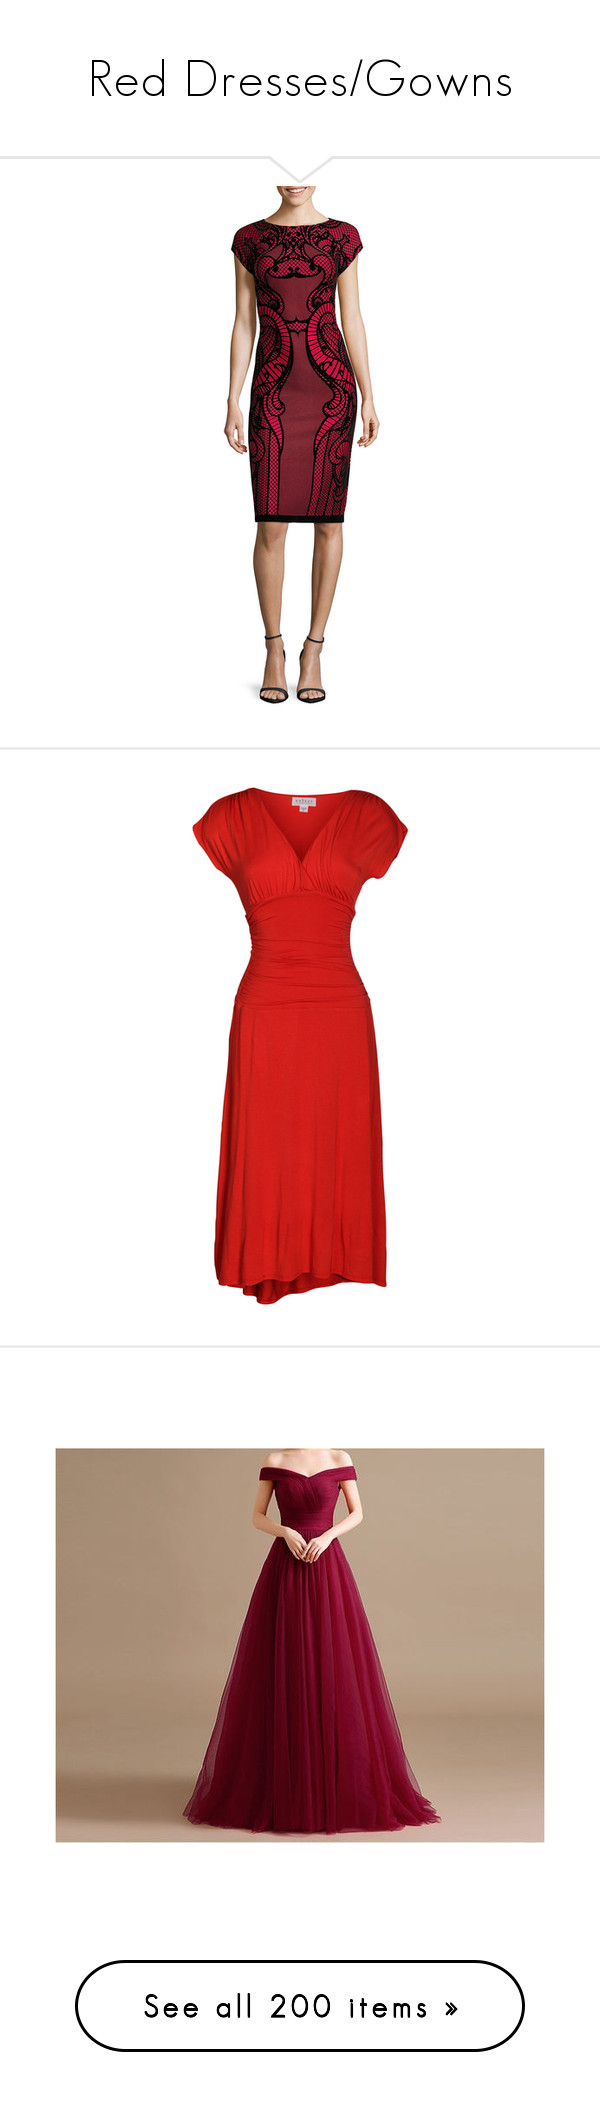 """""""Red Dresses/Gowns"""" by grungyandinbloom ❤ liked on Polyvore featuring dresses, cap sleeve evening dress, evening dresses, sheath cocktail dress, velvet evening dresses, cap sleeve cocktail dress, red, a line dress, below knee dresses and v neck ruched dress"""